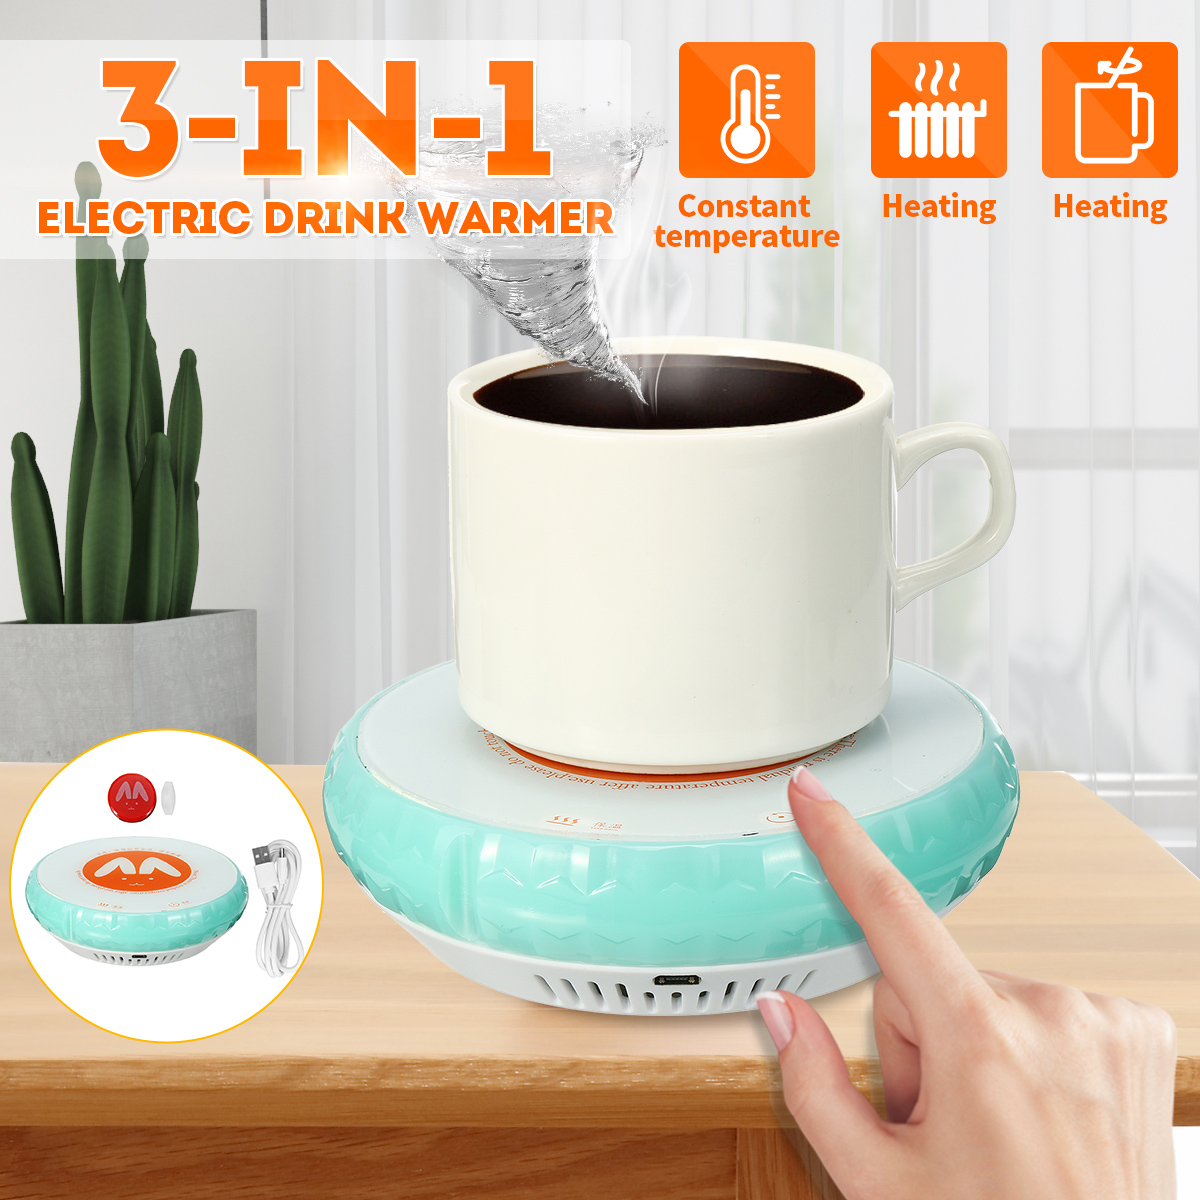 3 In 1 Magnetic Stirrer Magnetic Mixer Warmer Cup Mat Pad Cup Heating Mat Electric Tray Coffee Tea Drink Warmer Cup Heater